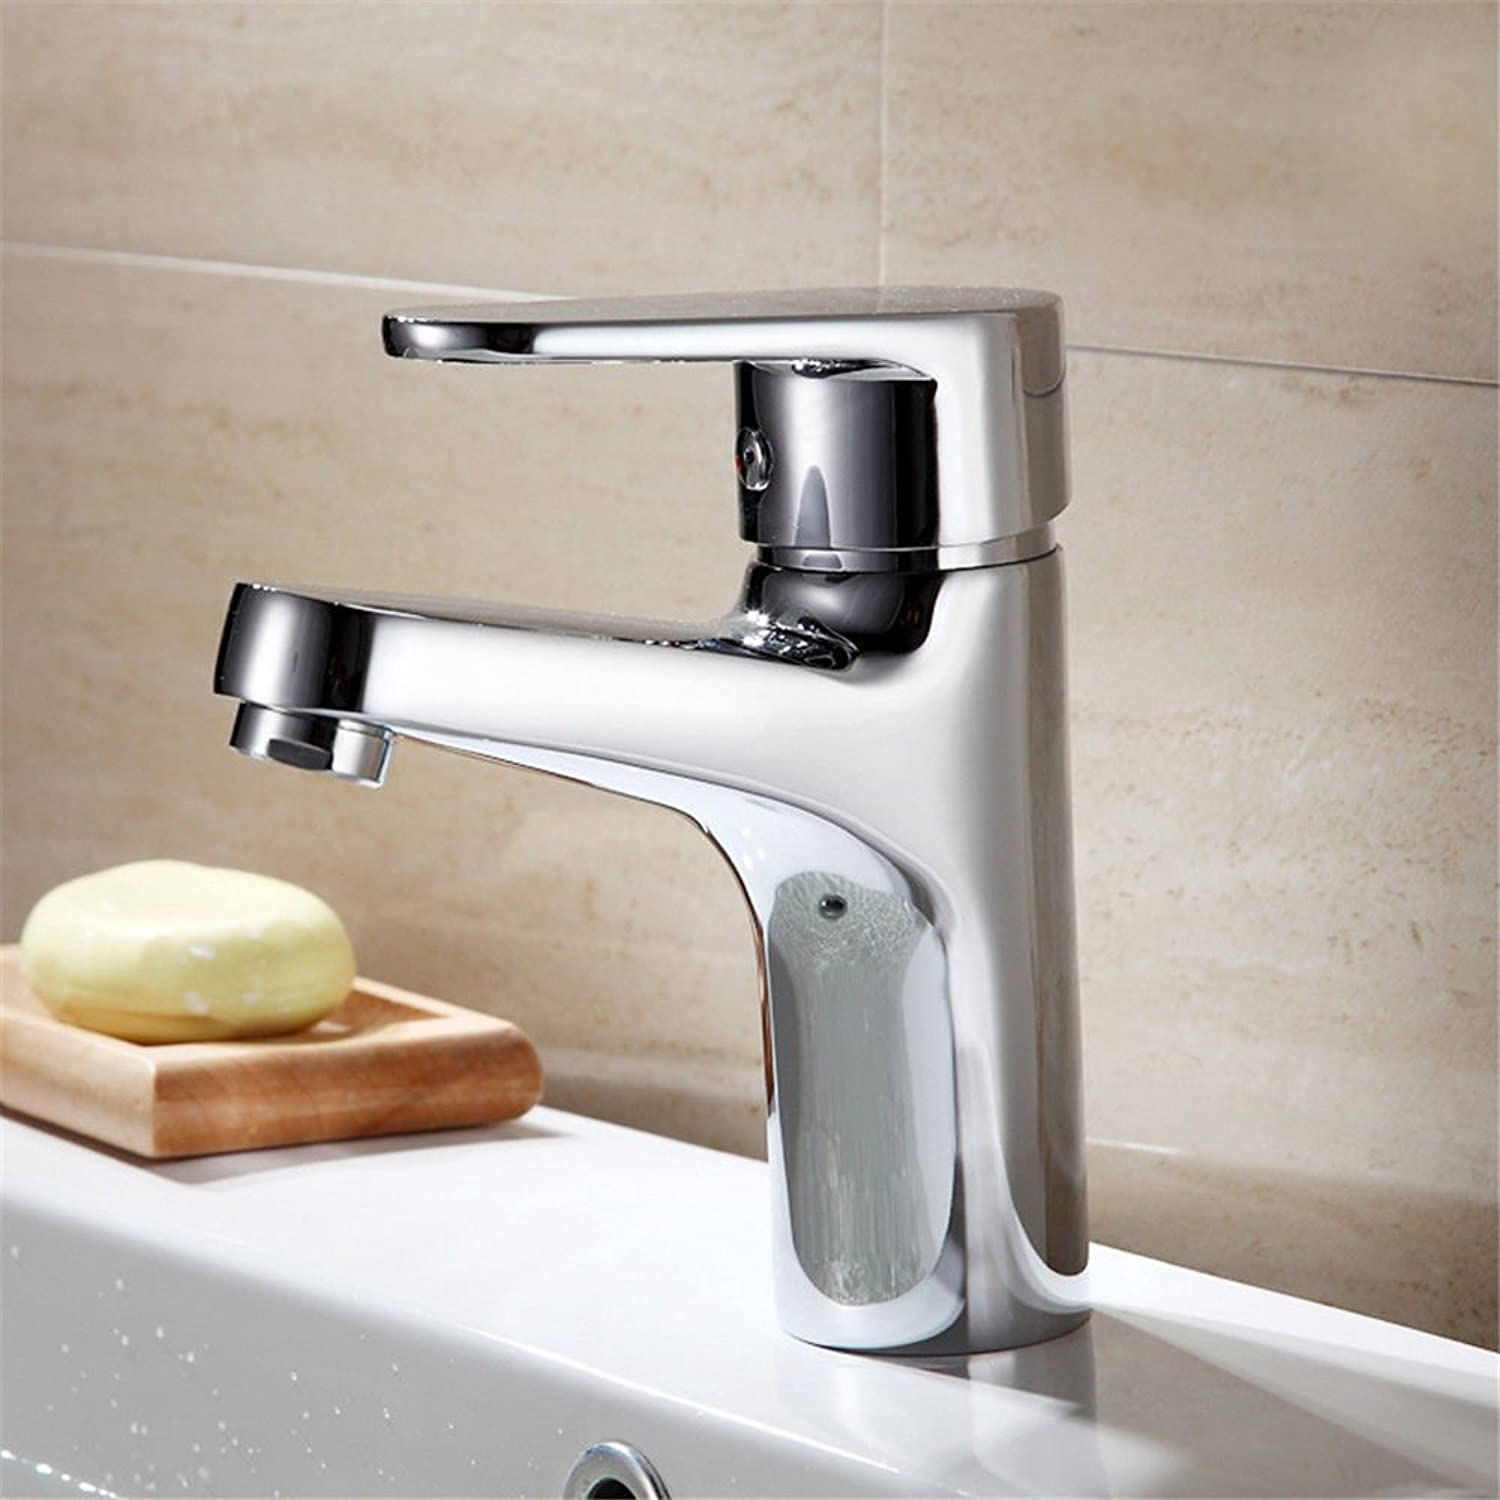 NewBorn Faucet Water Taps Hot And Cold Water Single Hole Full Copper Hot And Cold Single Hole Mixer Taps Wash-Basin Mixer